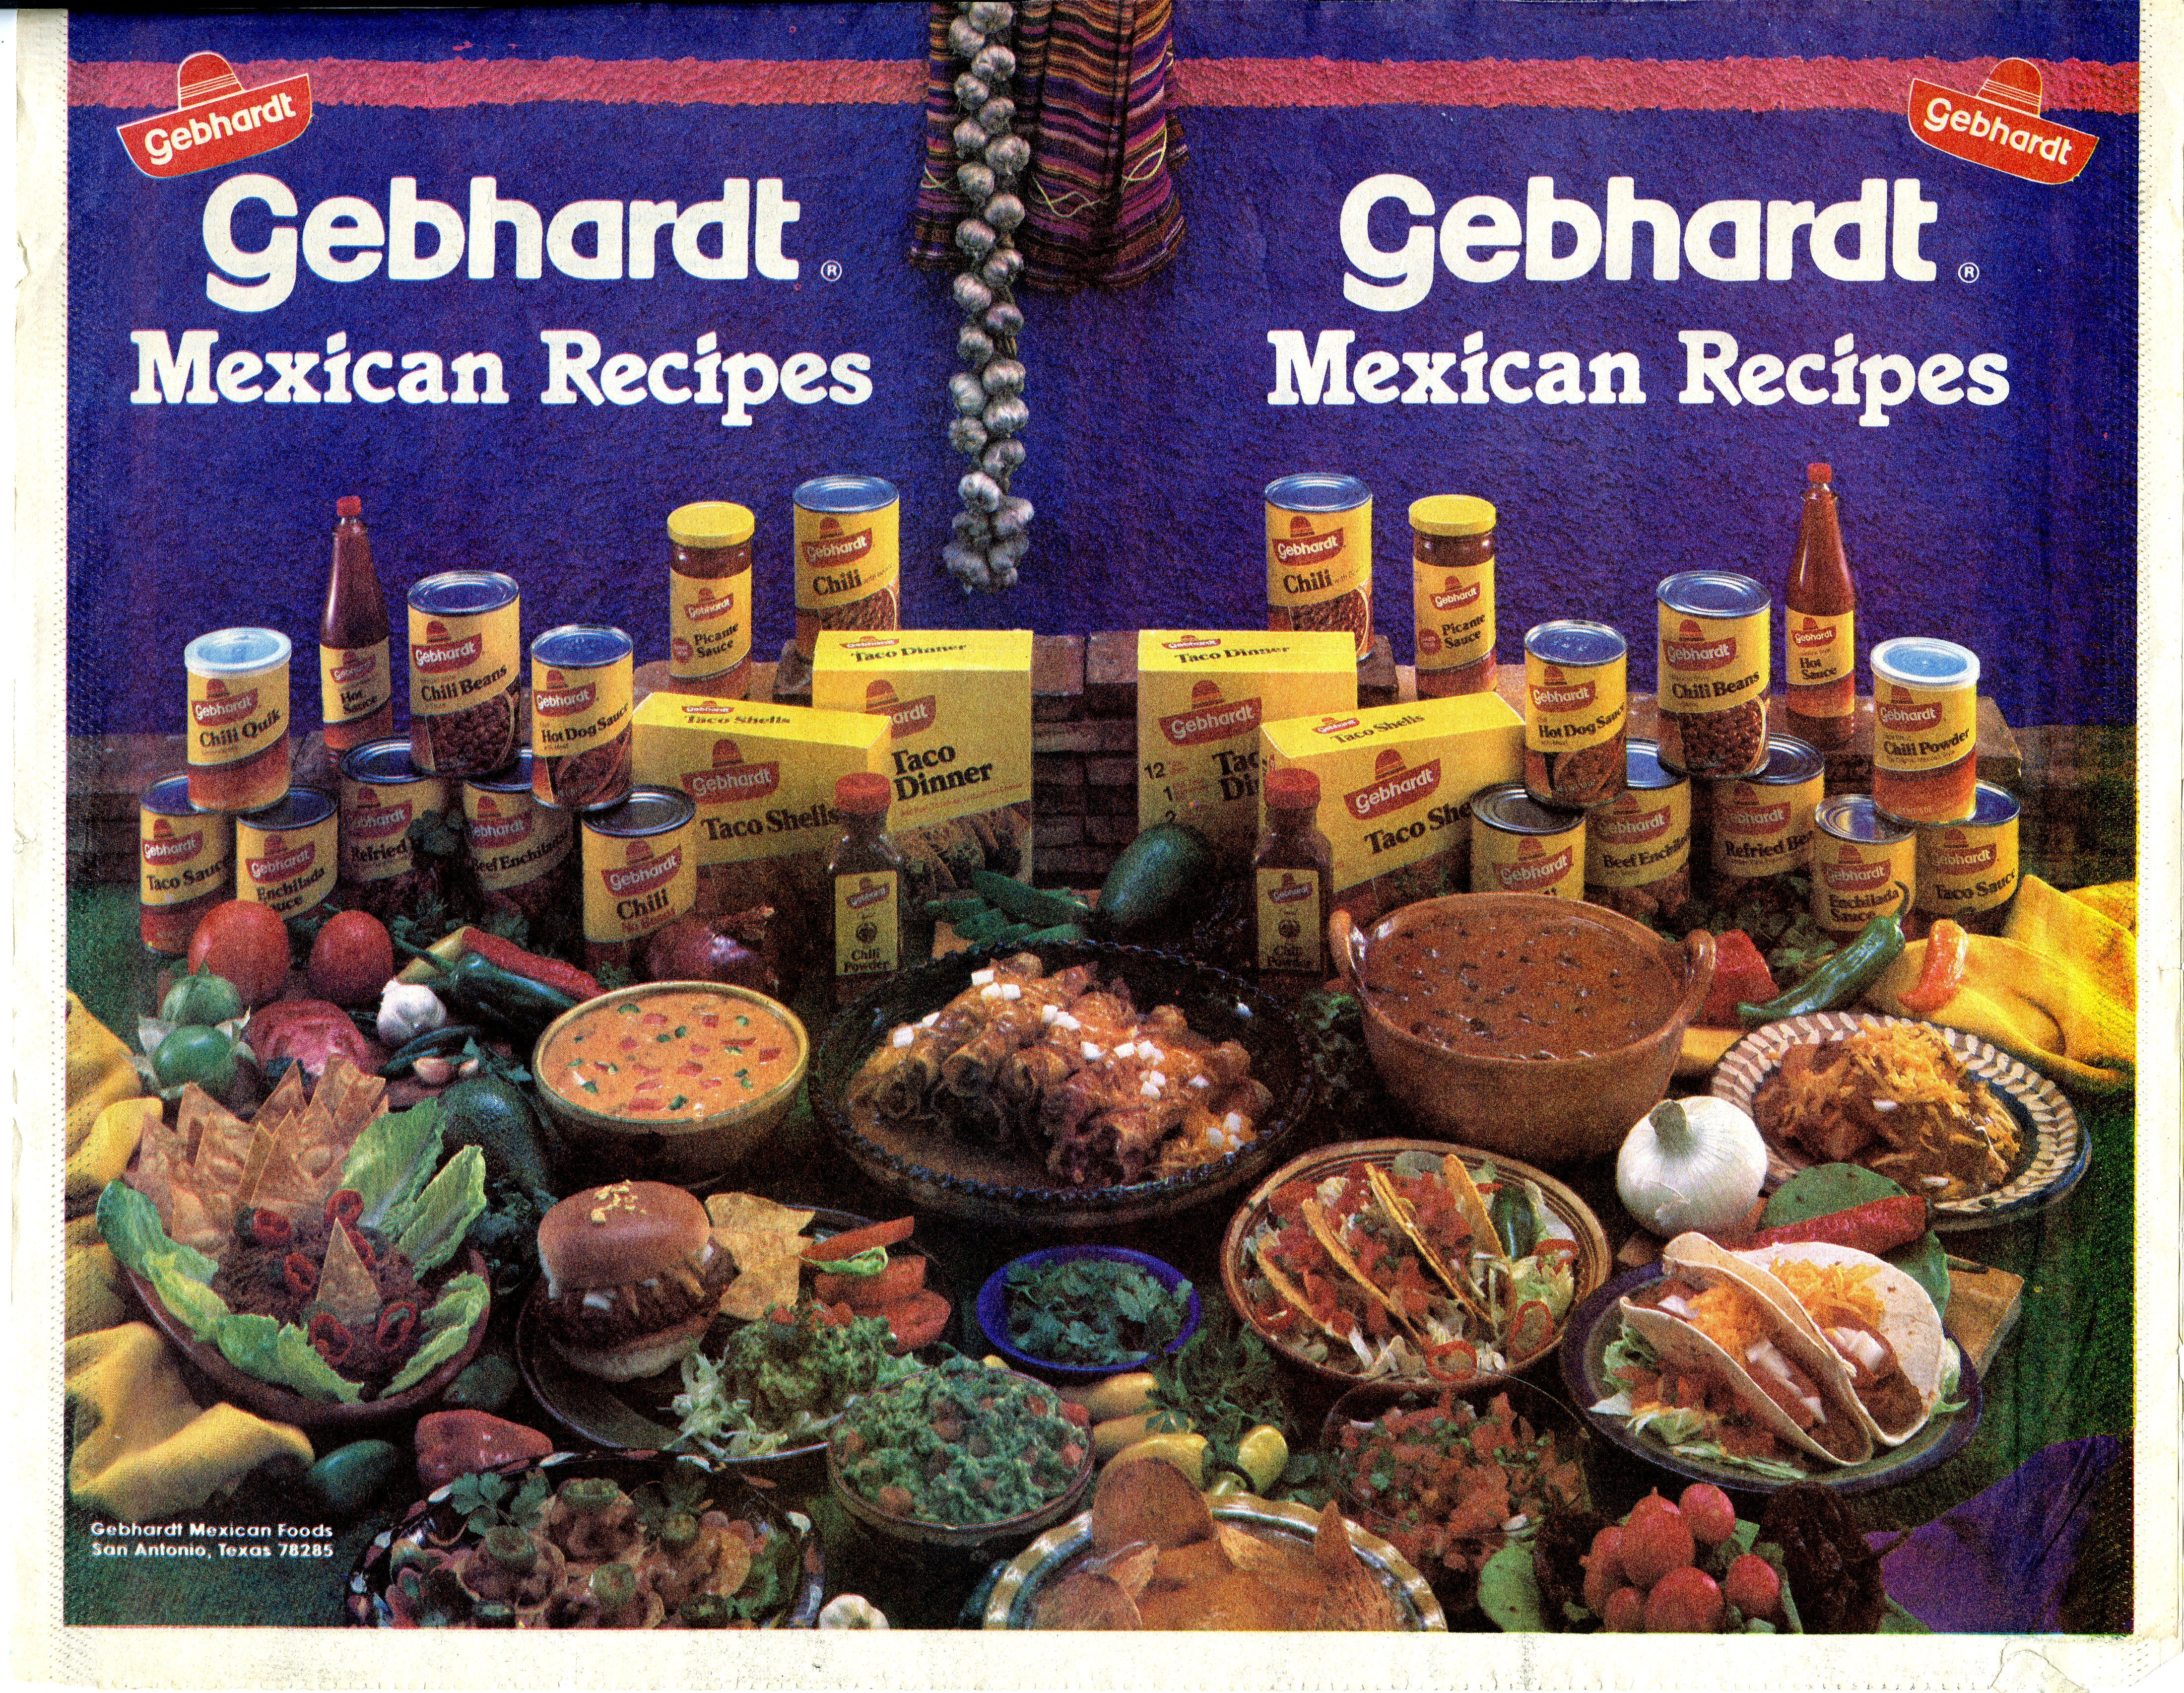 As the company's products expanded the Gebhardt name